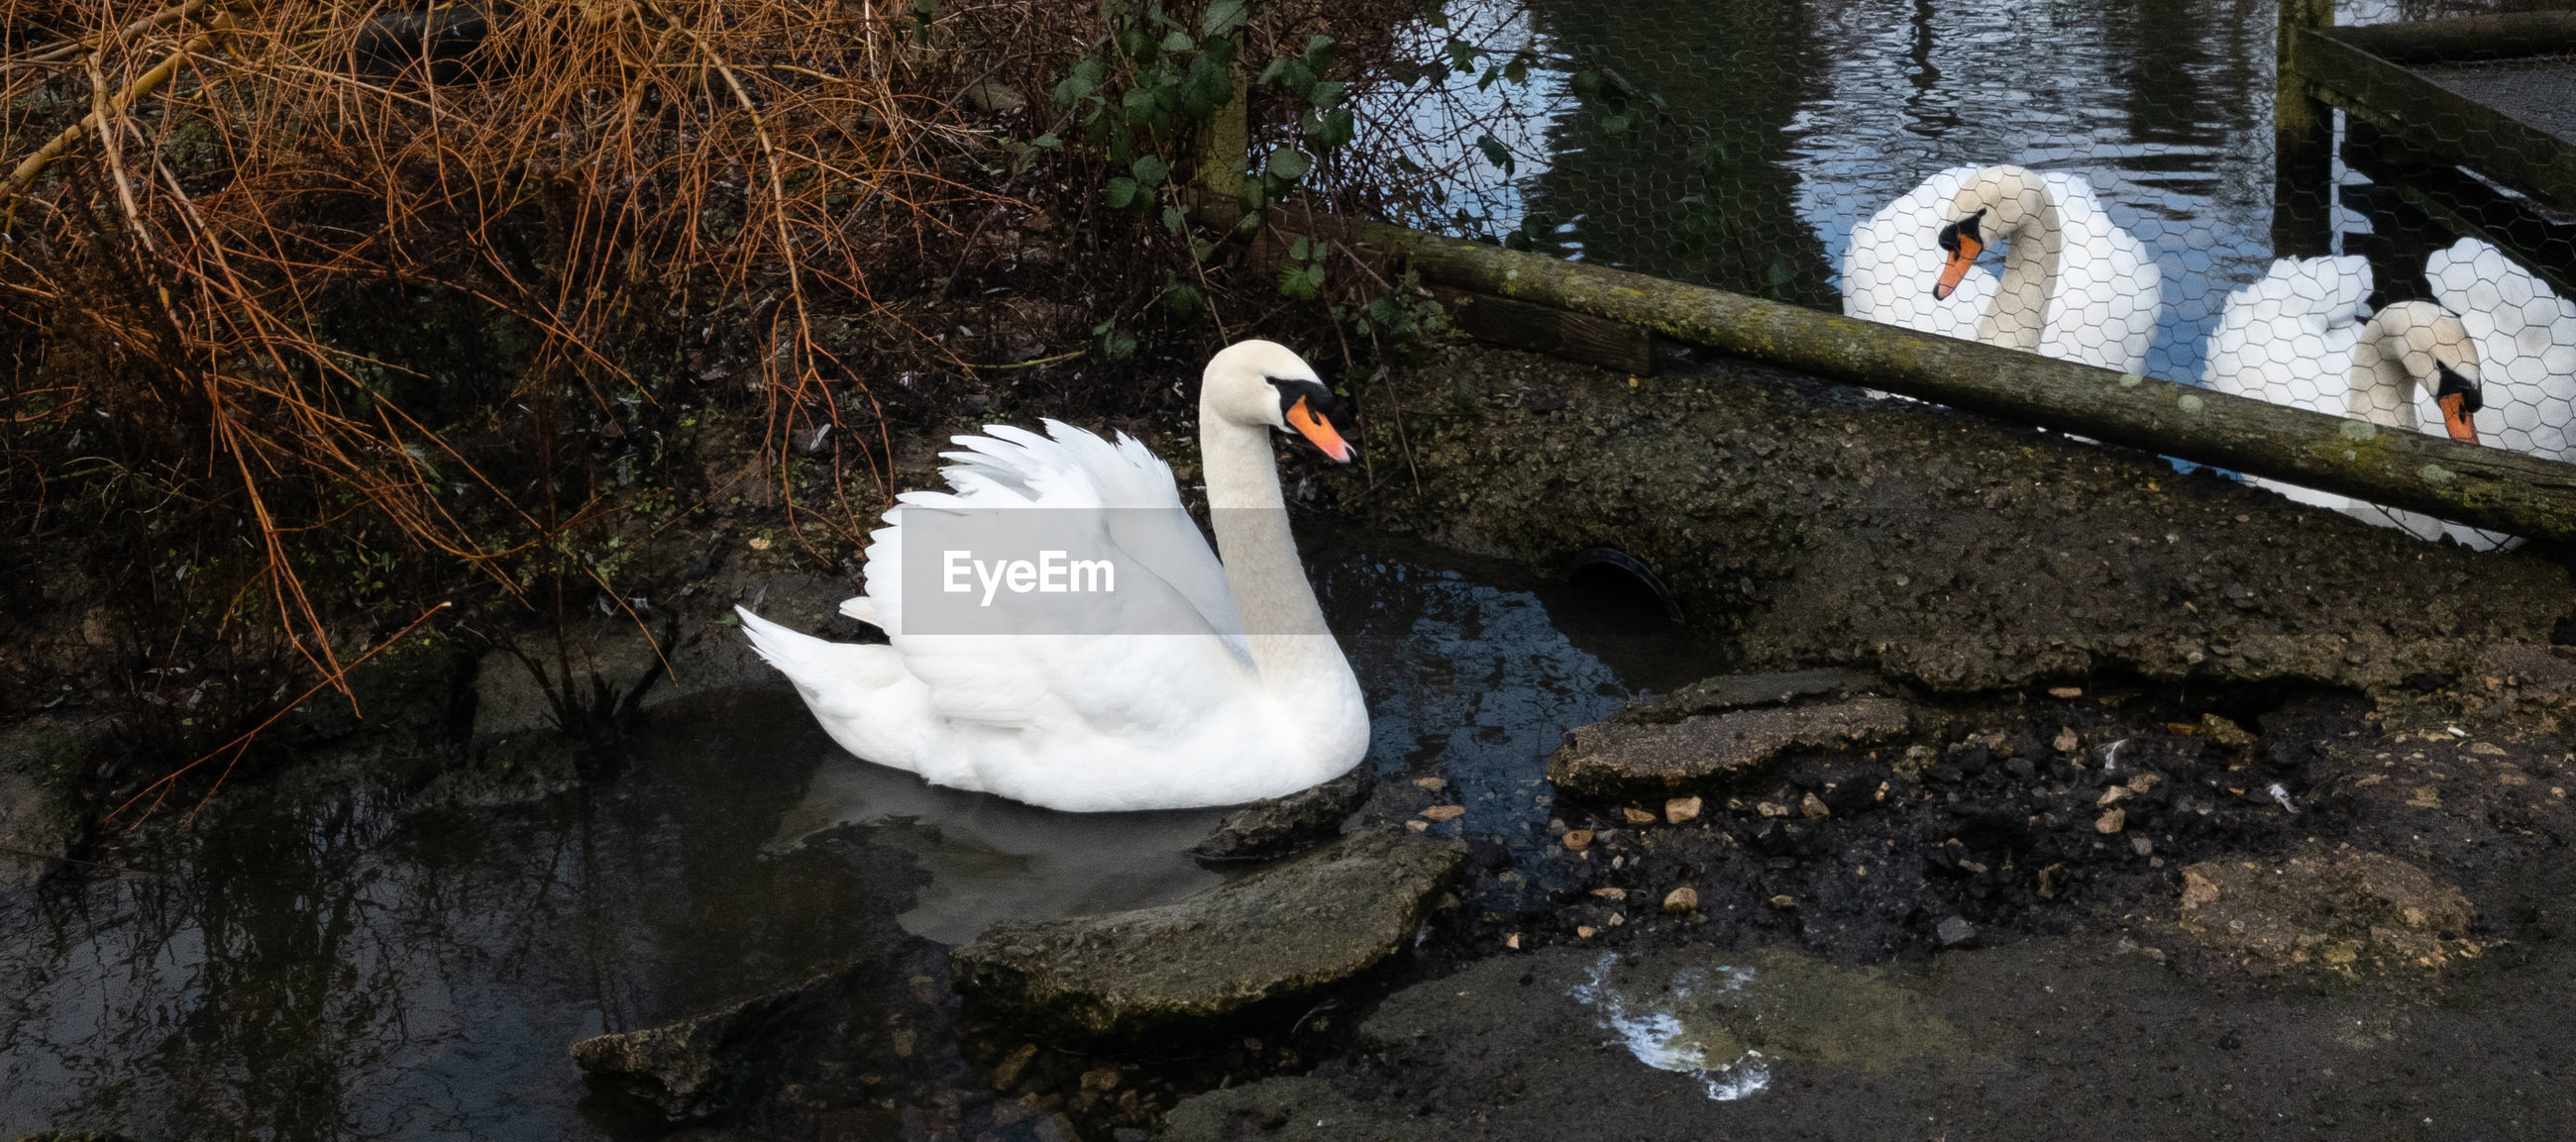 bird, animals in the wild, animal themes, animal wildlife, water, animal, vertebrate, lake, group of animals, swan, swimming, water bird, nature, white color, no people, day, rock, rock - object, mute swan, duck, floating on water, animal family, cygnet, animal neck